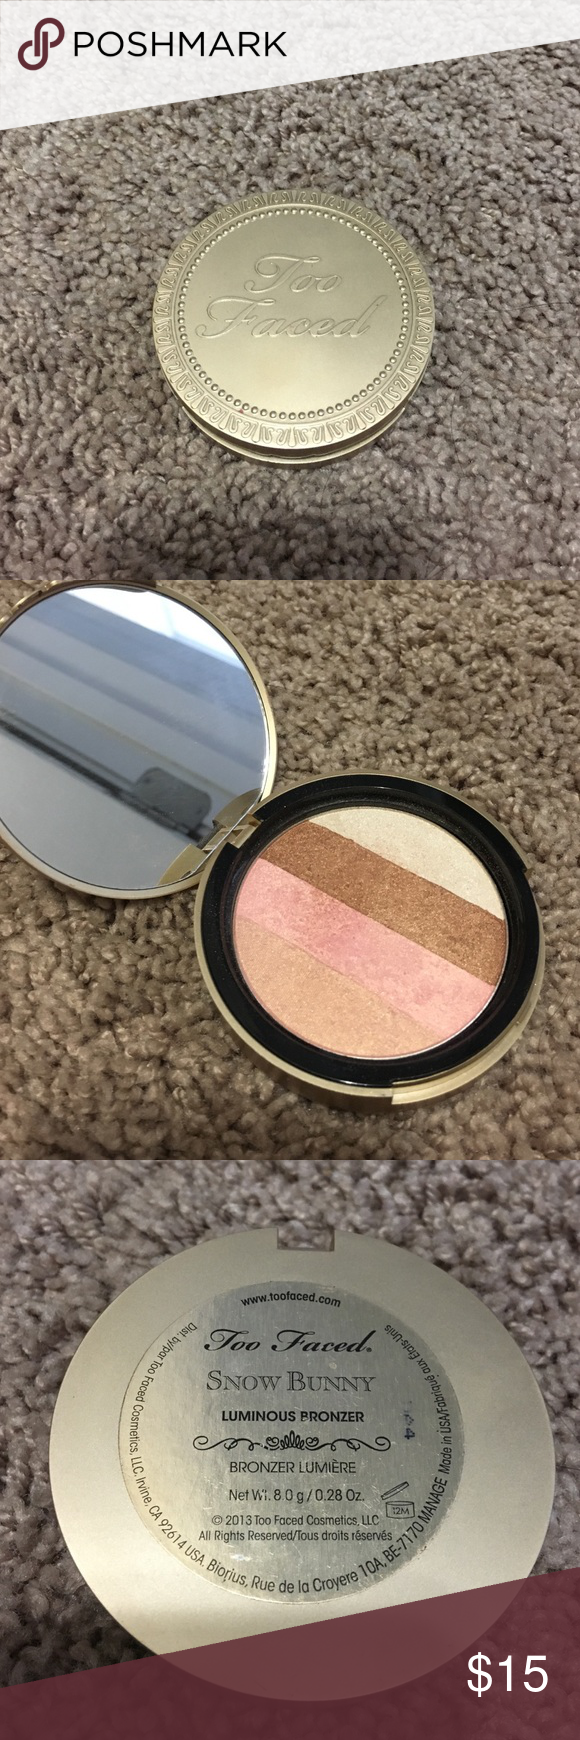 Too faced Snow Bunny Bronzer Only used a handful of times. Still has a lot of product left. Authentic. Does not come with packaging. Too Faced Makeup Bronzer